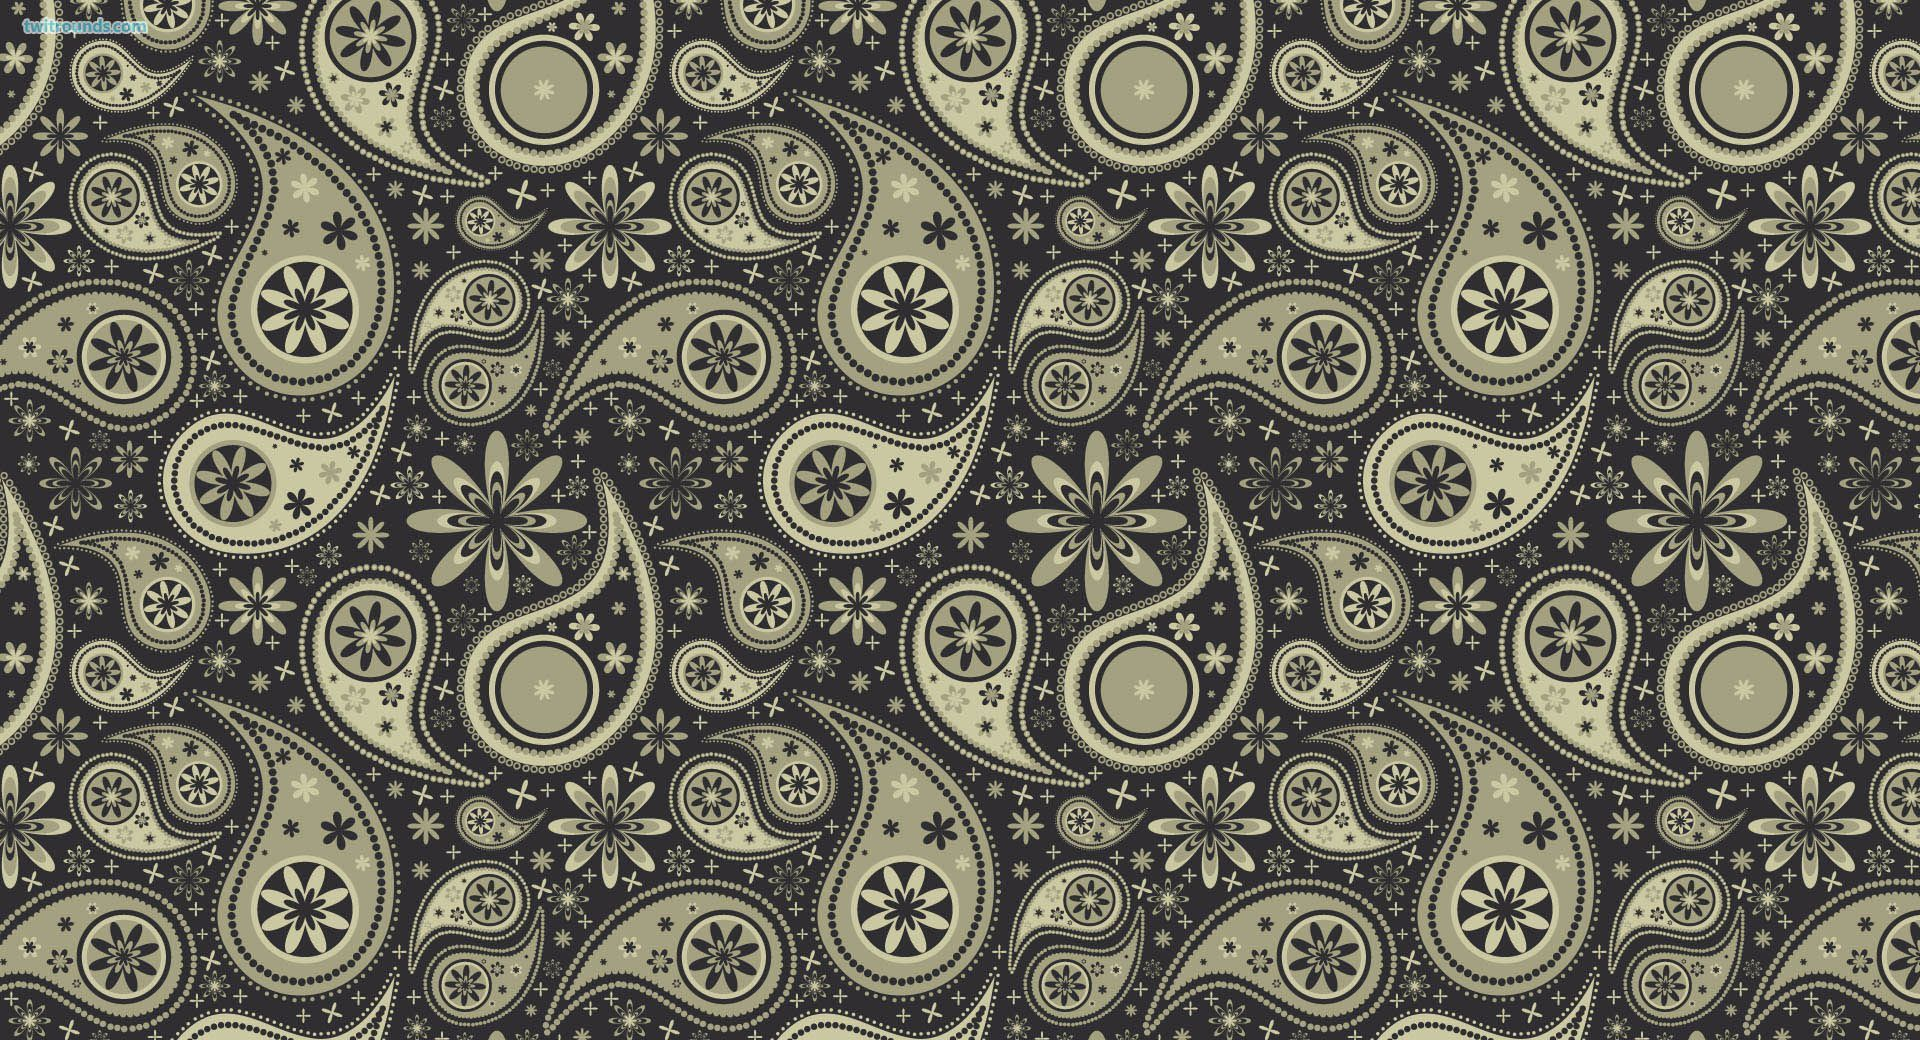 1920x1040 paisley | Doodles, Doodle inspiration and Artwork